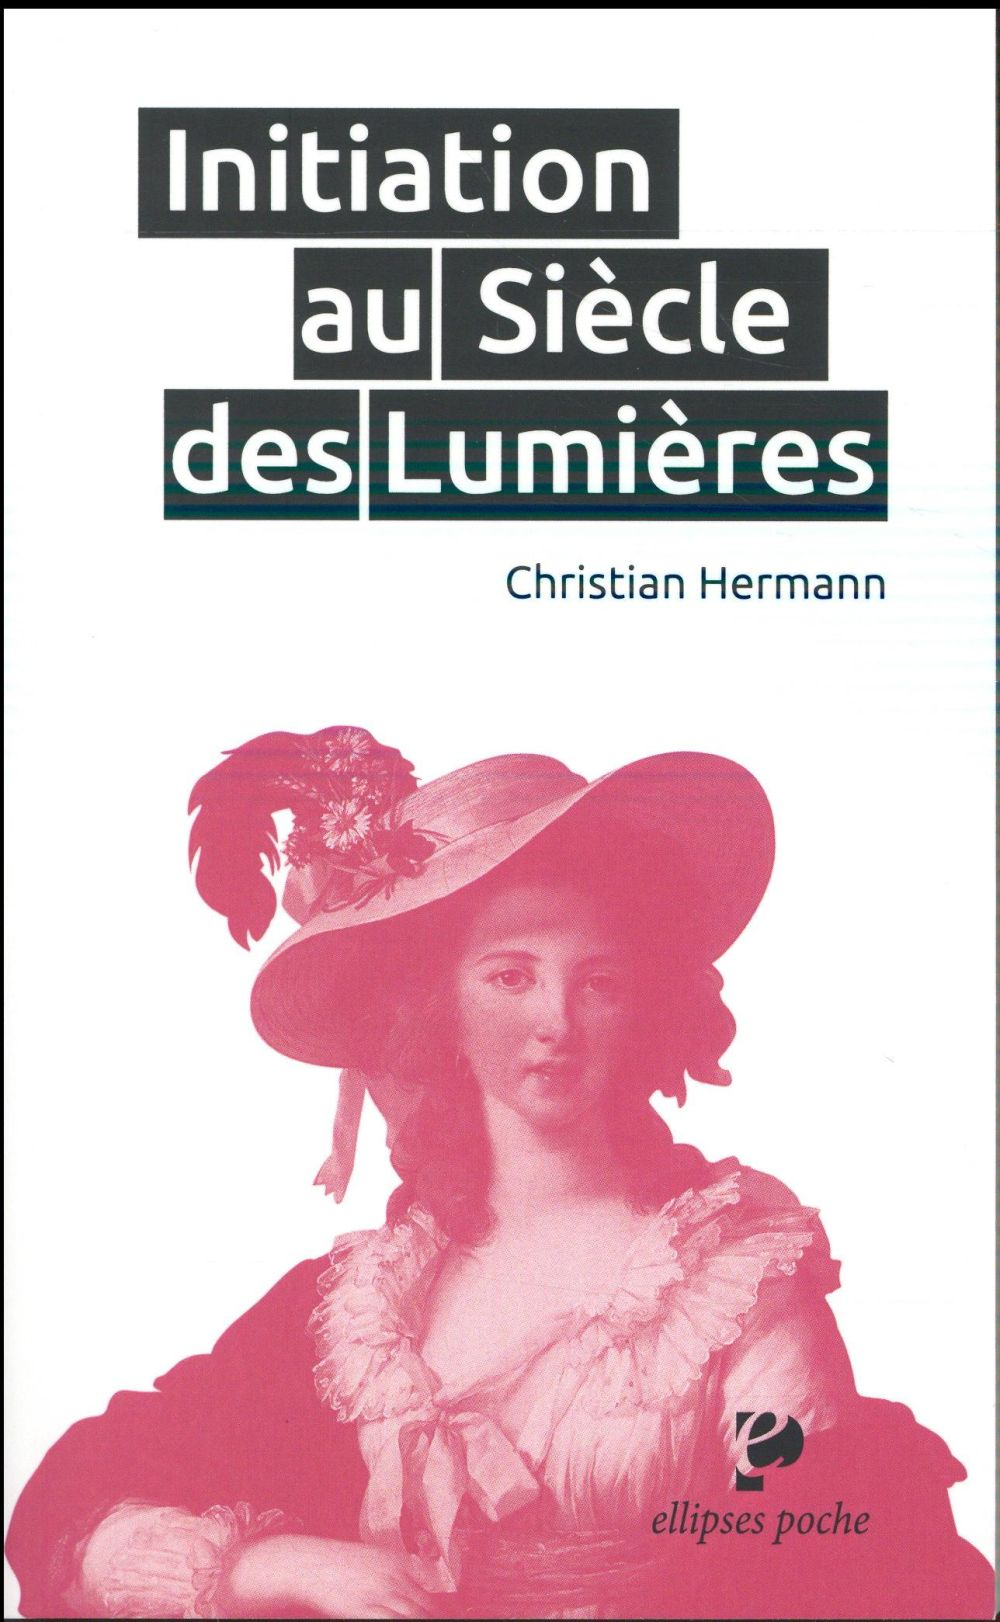 Initiation au siecle des lumieres